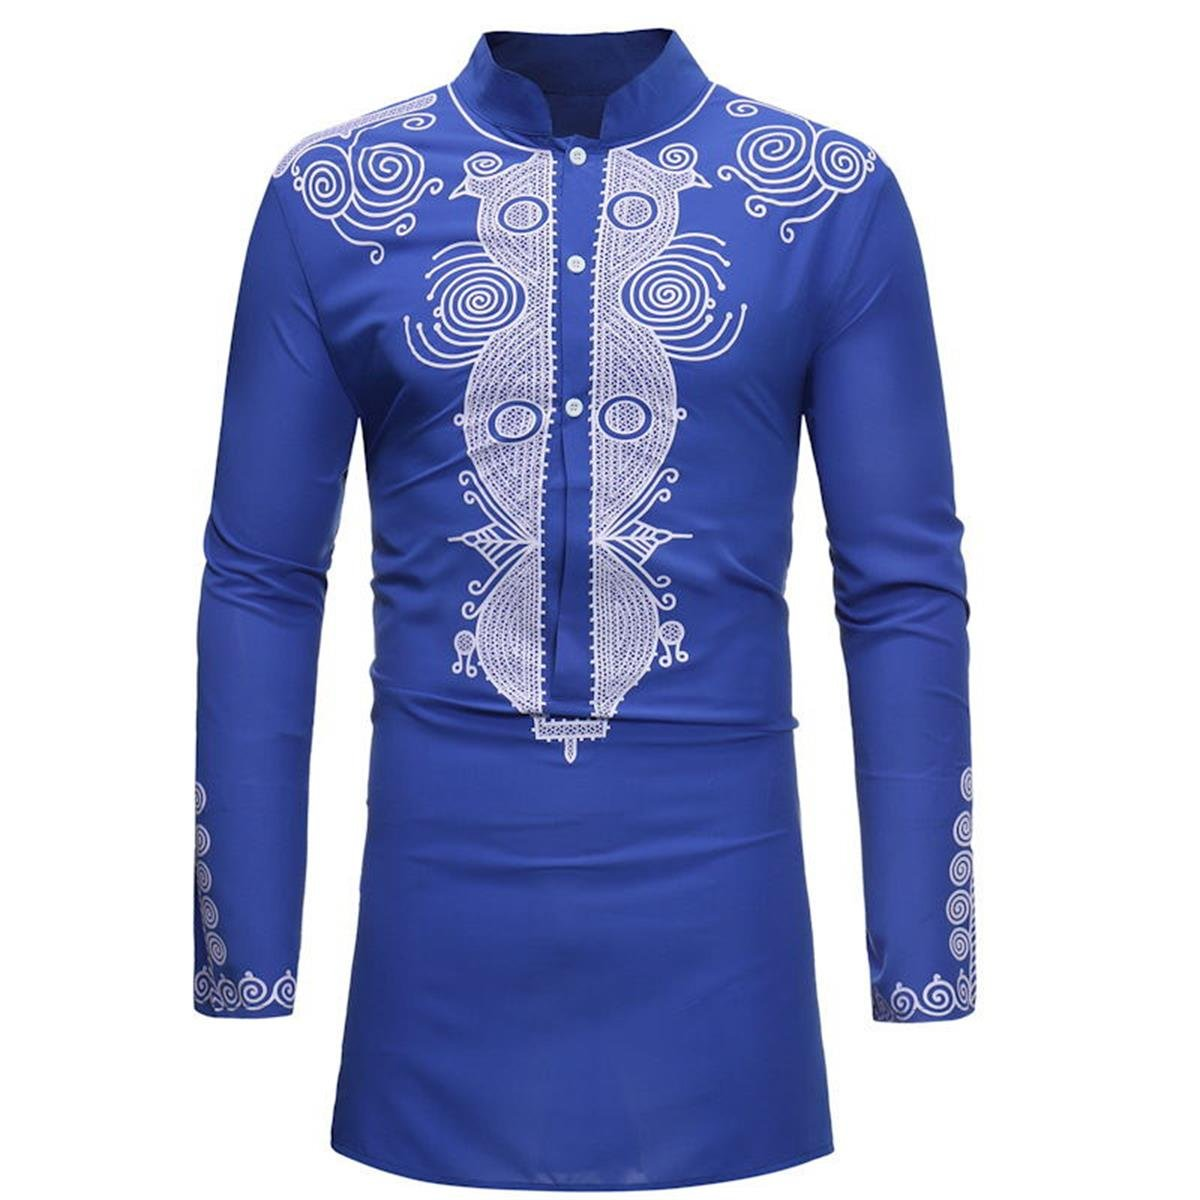 Luxfan Mens African Clothing Tribal Dashiki Traditional Maxi Stand Collar Long Sleeves Dress Shirt Plus Size (Blue, XL)